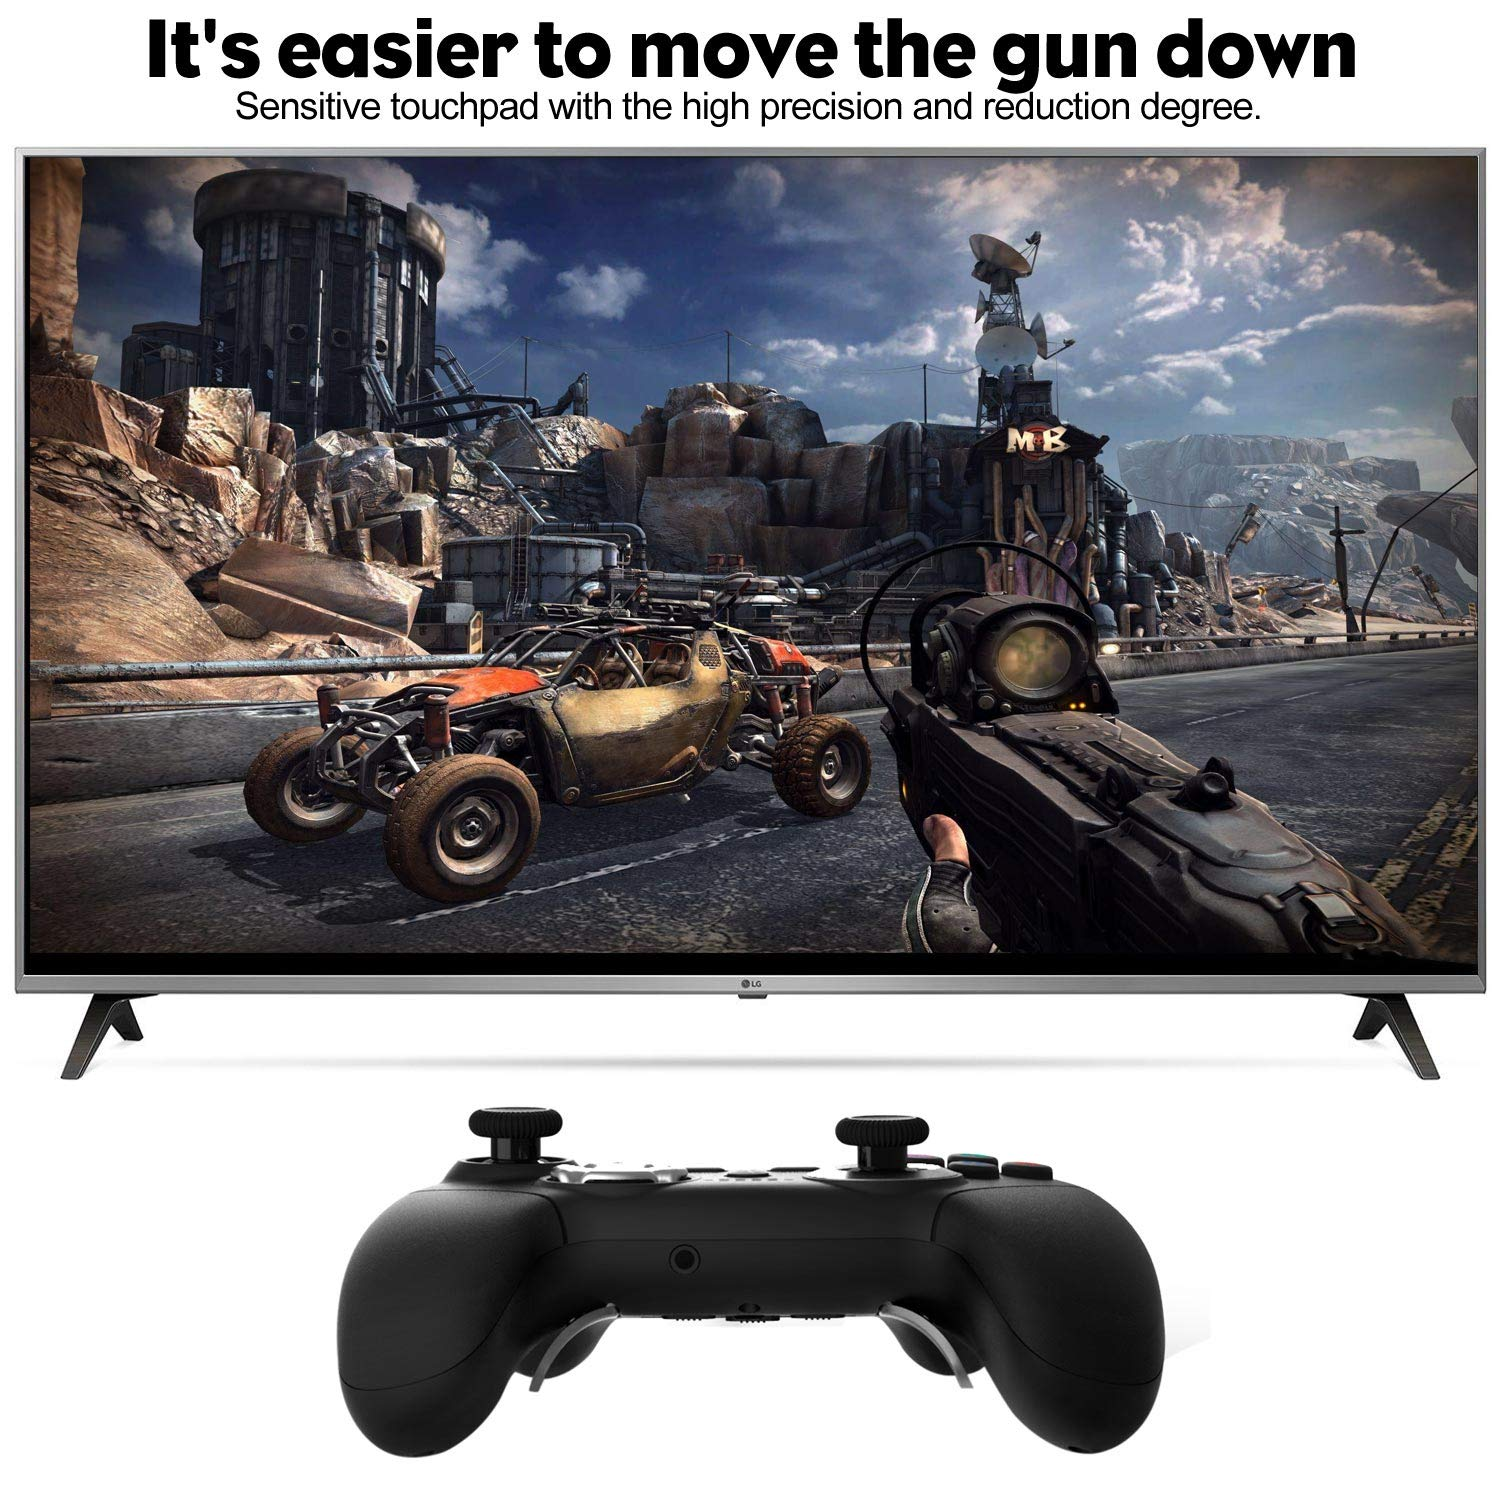 Amazon.com: PS4 Modded Controller, Remap Elite PS4 ...